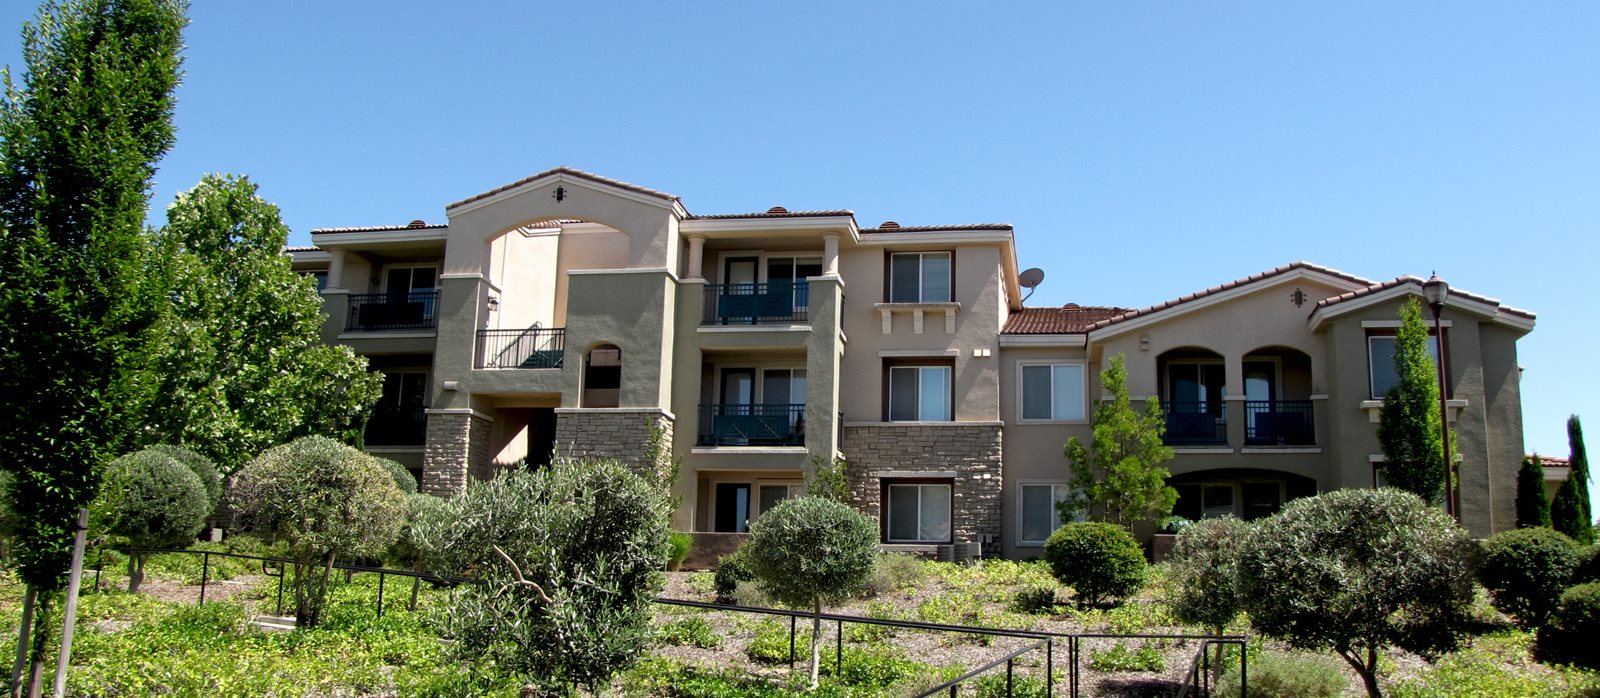 Apartments in Roseville, CA l The Phoenician Apartments